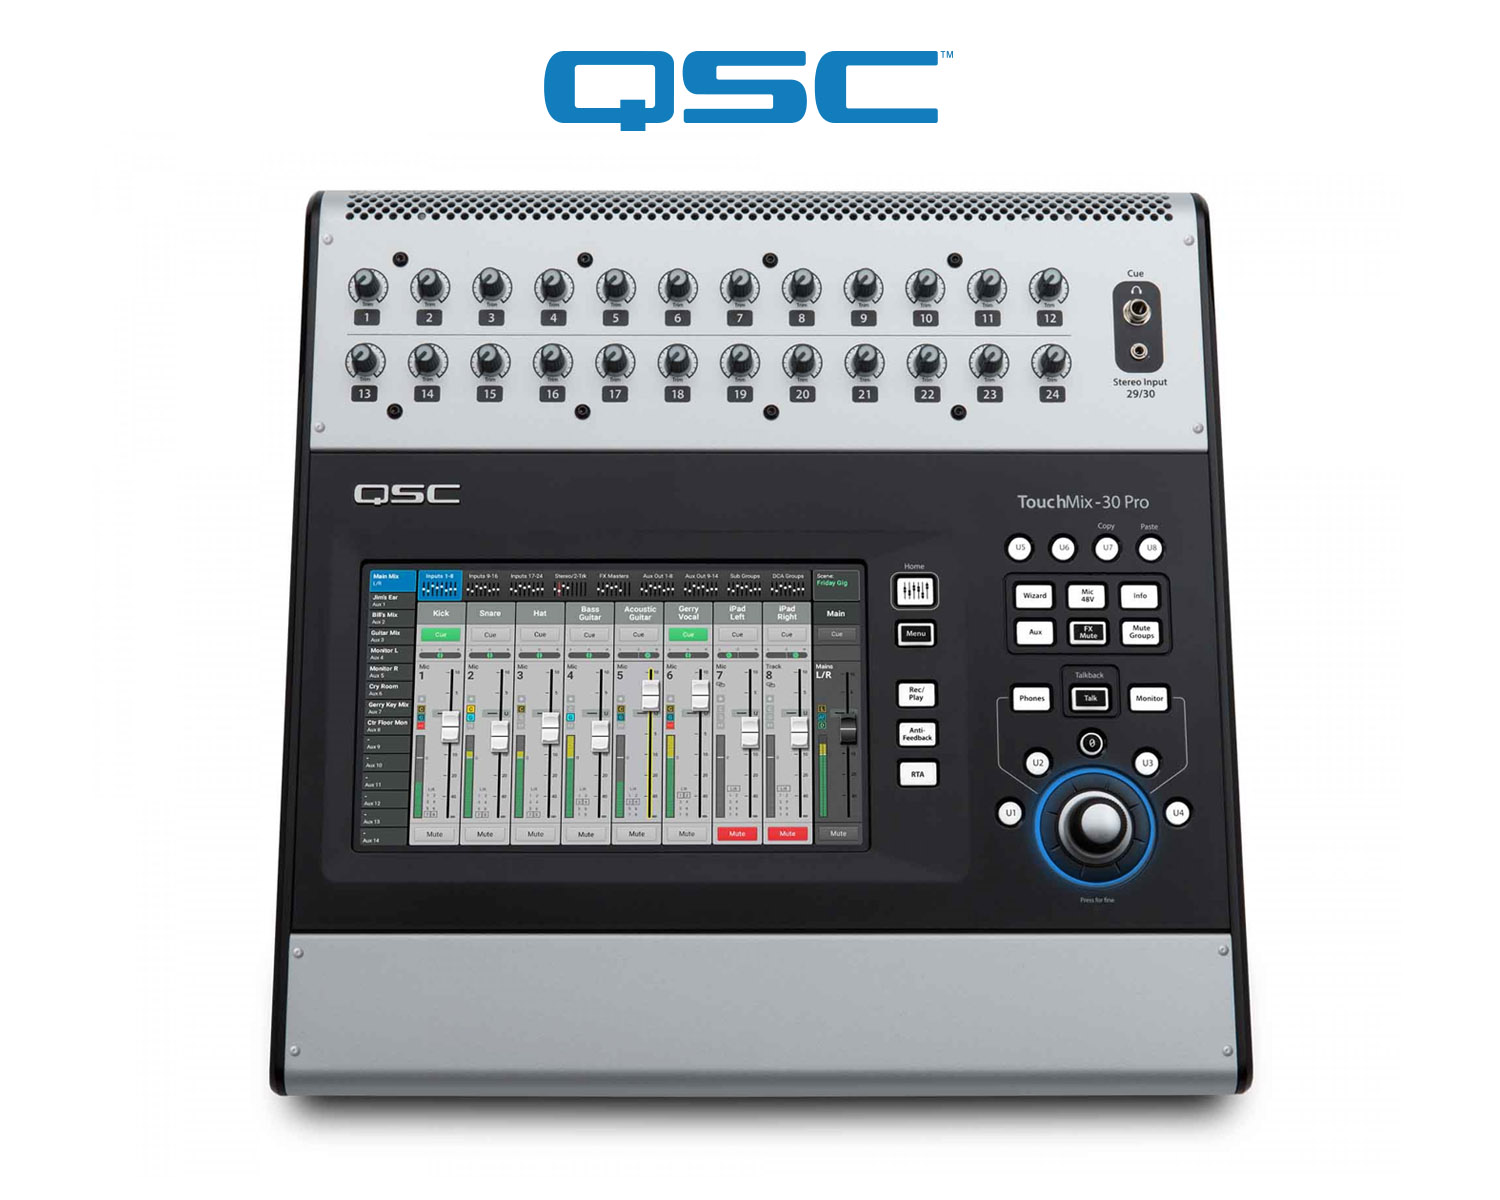 QSC TouchMix-30 Pro brings sound to French chateau